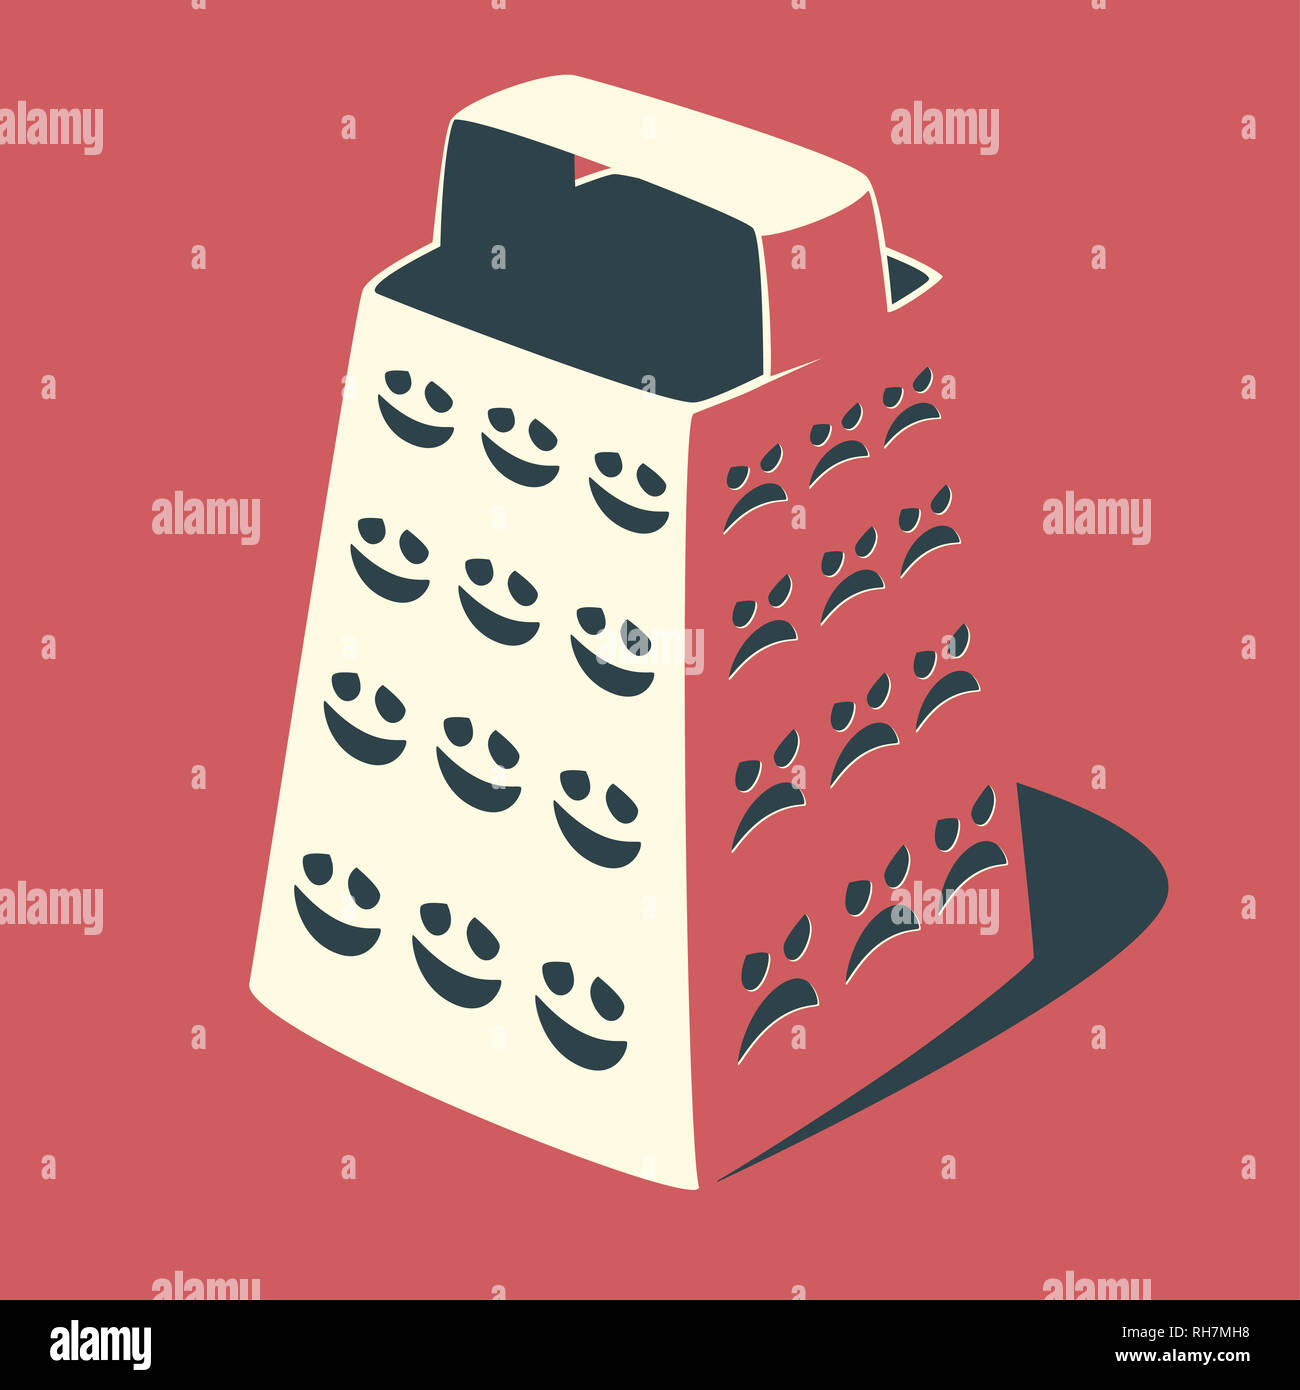 Public opinion concept illustration. The grater with the holes as negative and positive face expressions. - Stock Image